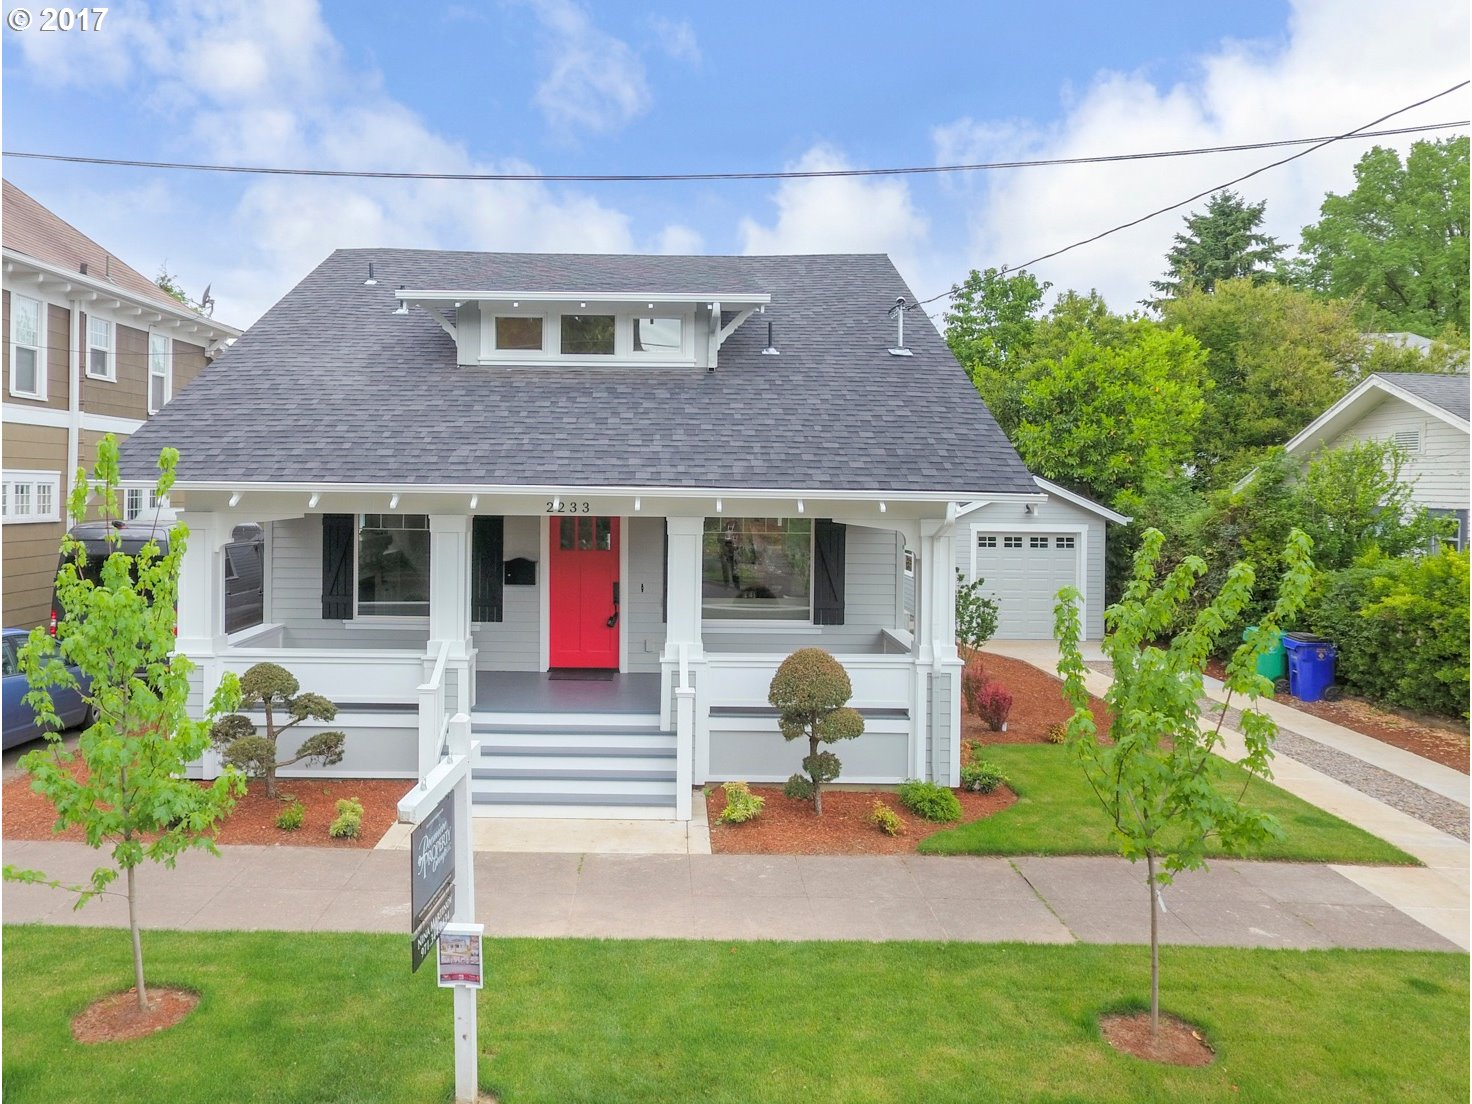 2233 SE 26TH AVE Portland, OR 97214 - MLS #: 17097116